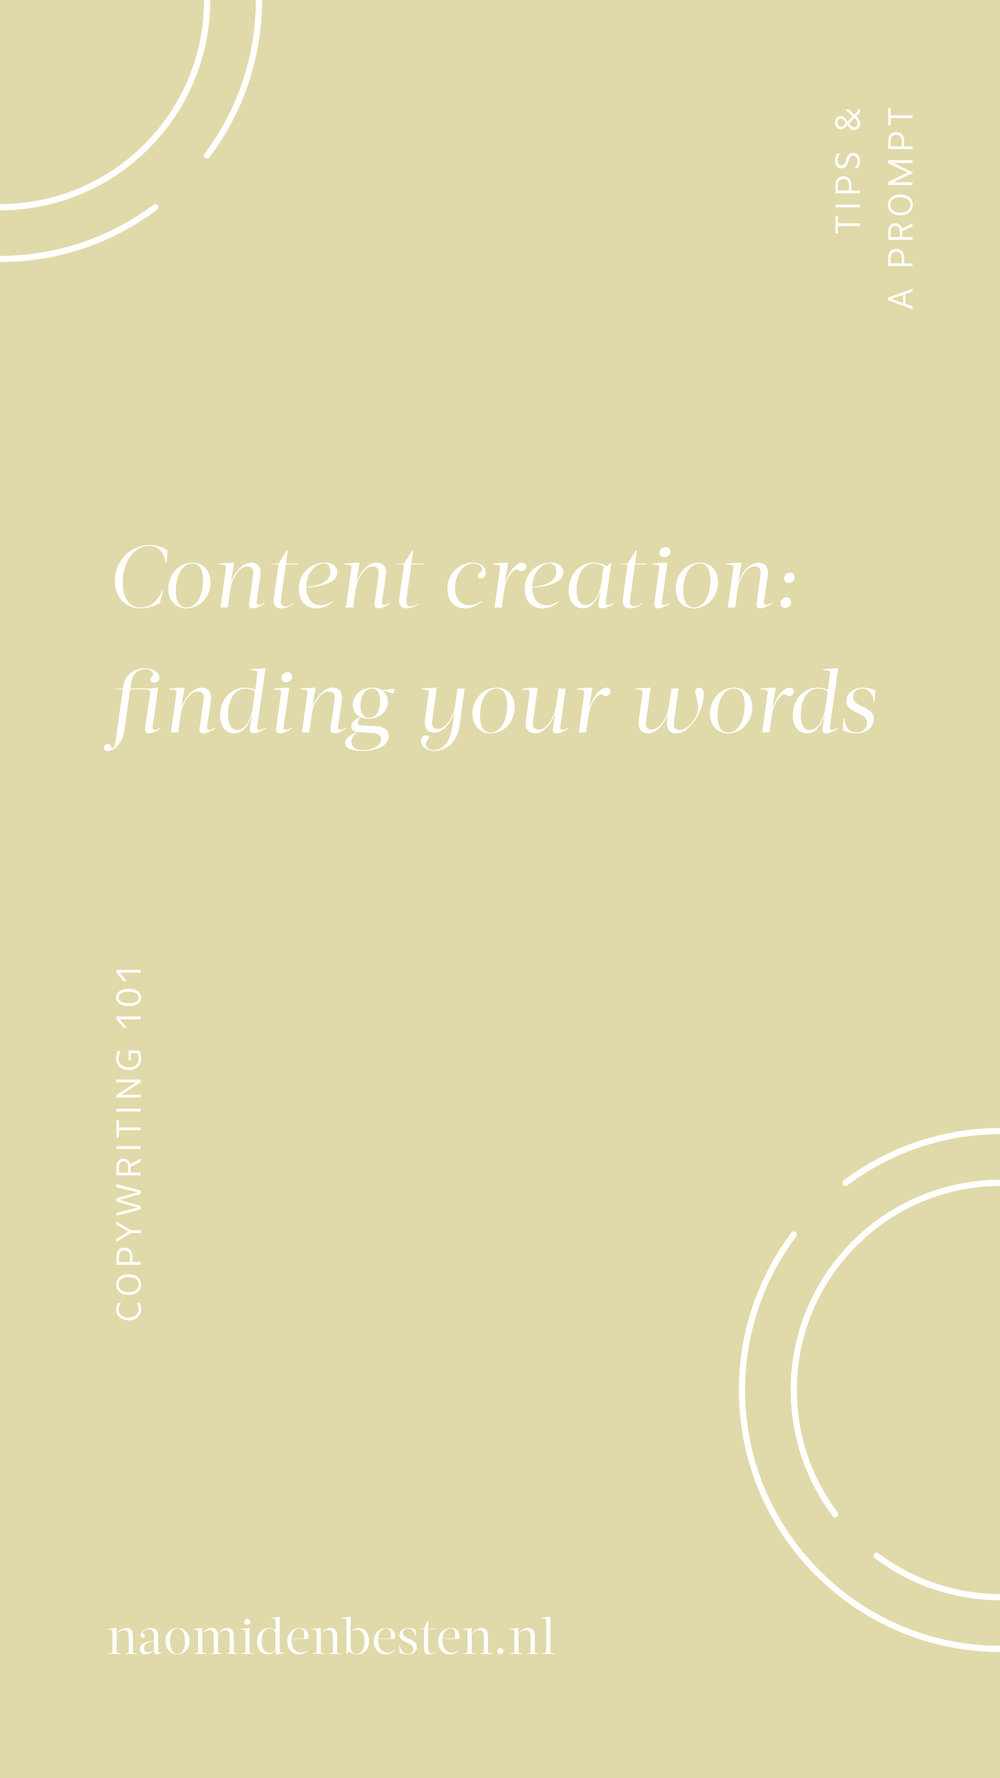 Content creation - Finding your words